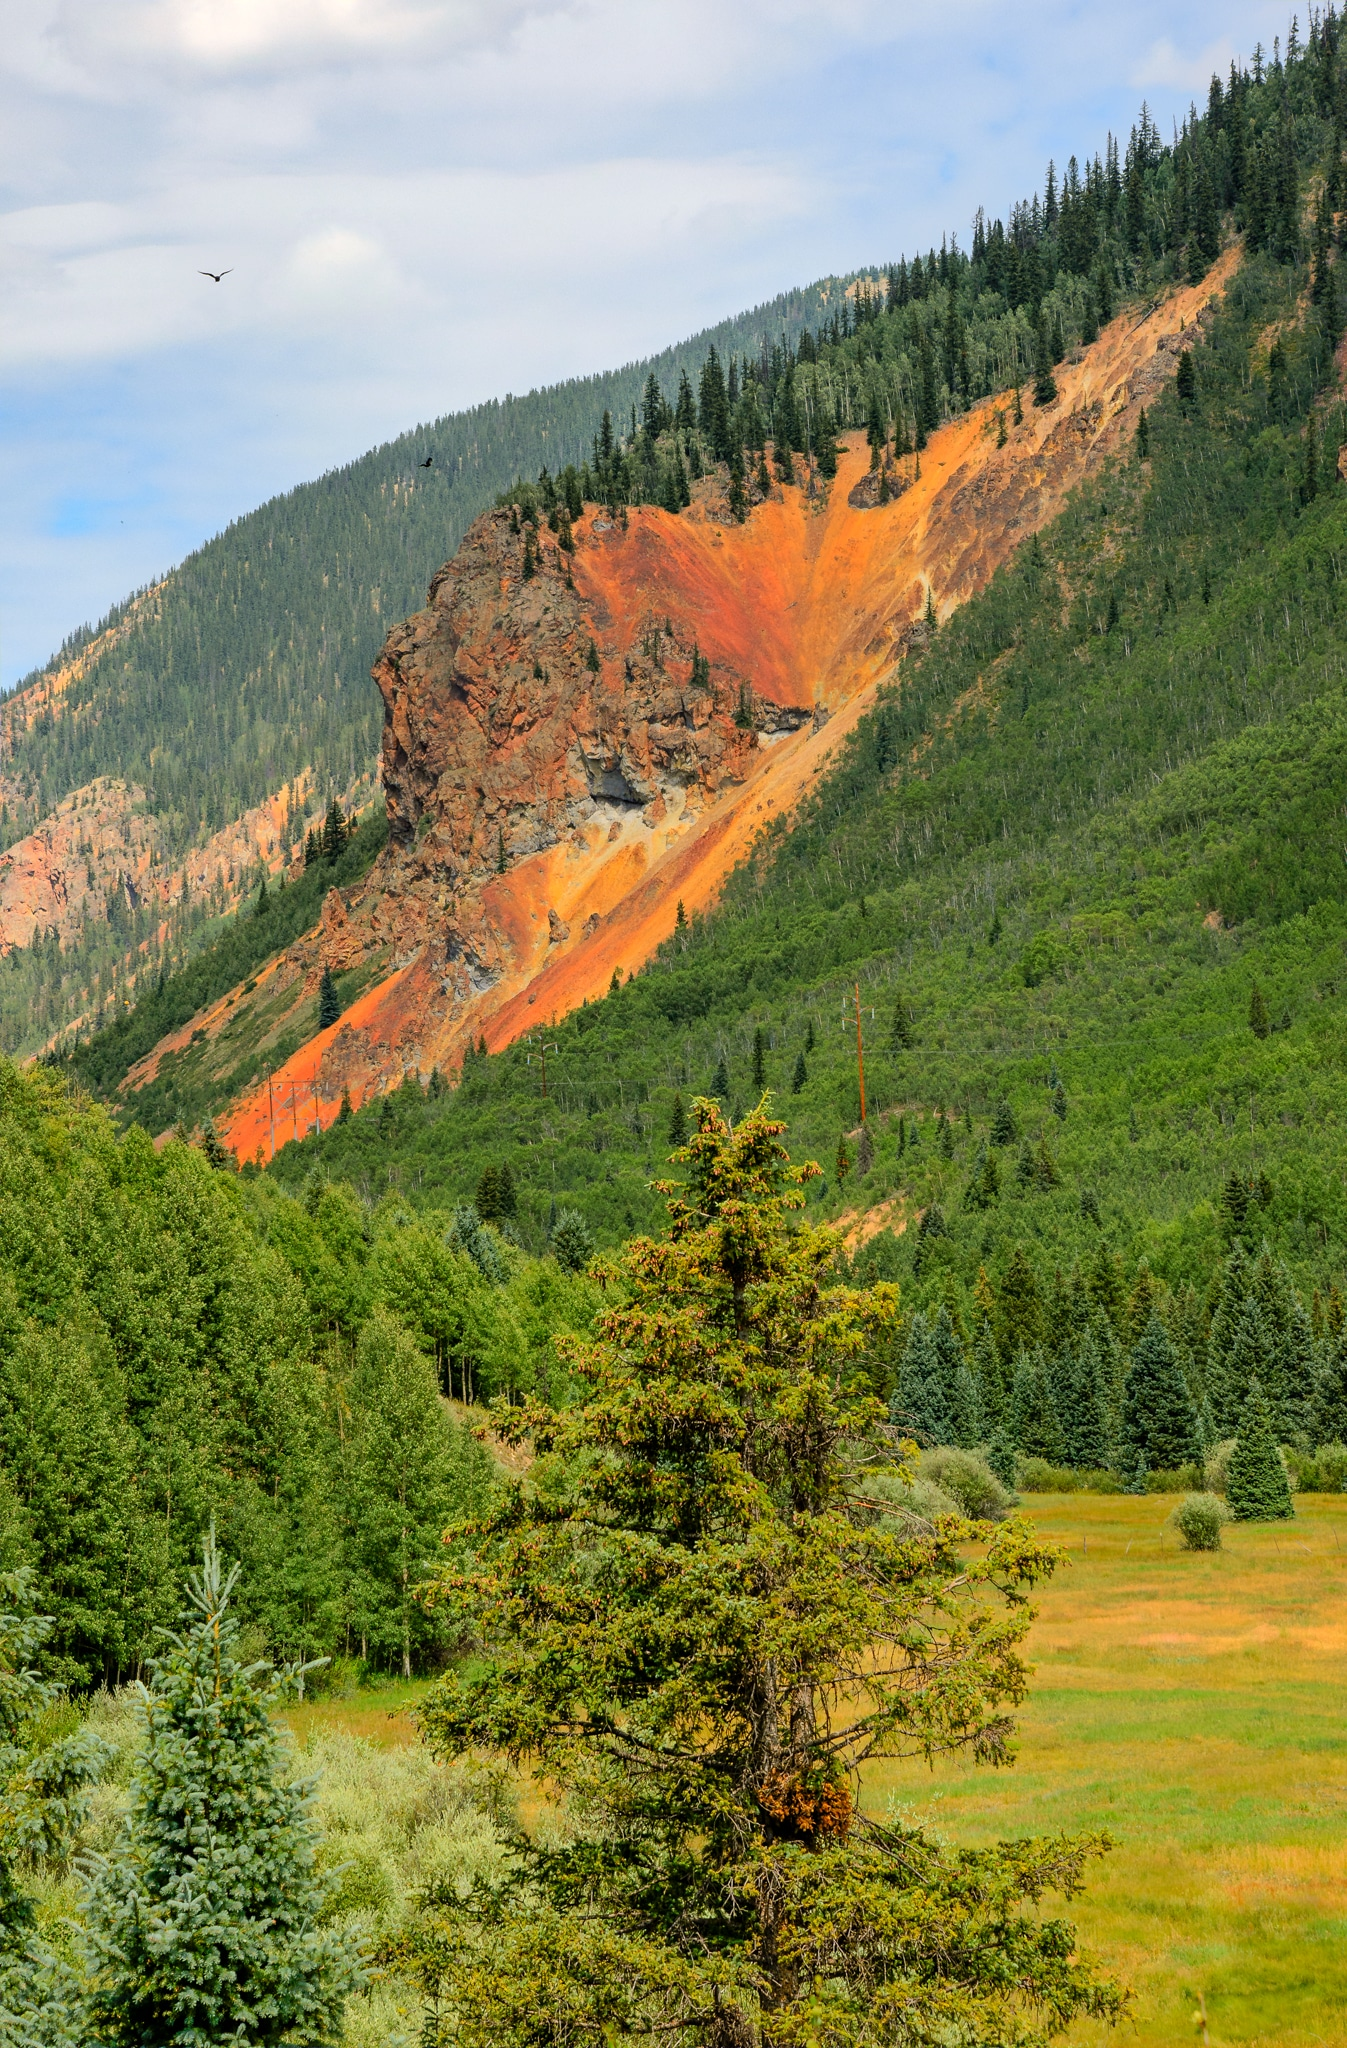 Viewed from US 550 heading north into Silverton, Colorado, this highly oxidized and mineralized volcanic intrusion stands out against the deep green of the surrounding spruce forest. It is on the western slope of Anvil Mountain and is part of the western edge of the Silverton Caldera, which formed over 30 million years ago.